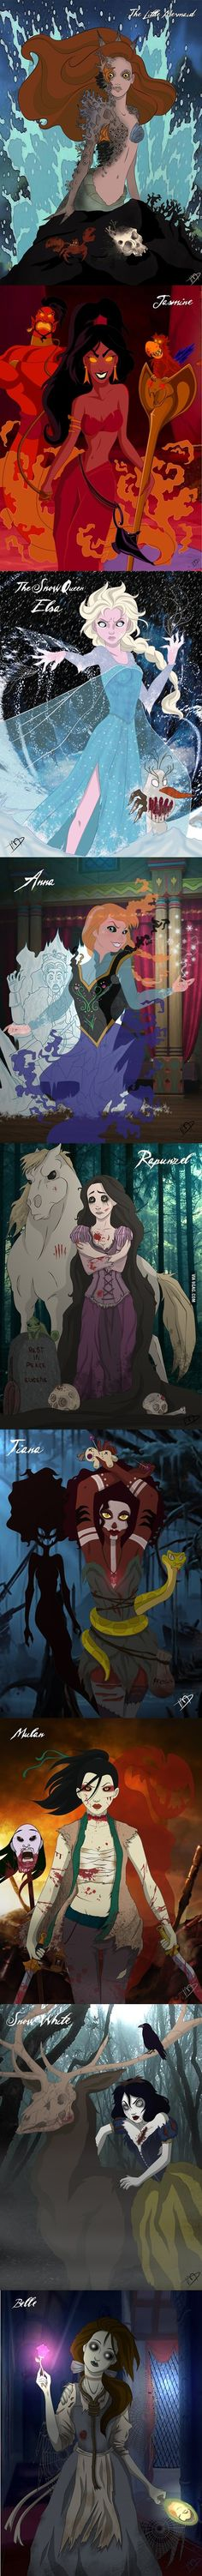 What if Ariel lost her deal with the witch? If Jasmine got stuck with Jafar? If Elsa gone bad? If Anna got killed? If Rapunzel couldnt save Eugene? If Tiana went with the Dark Arts? If Mulan went with the Huns? If Snow White got killed by the Huntsman? If Belle got hung for loving the Beast?